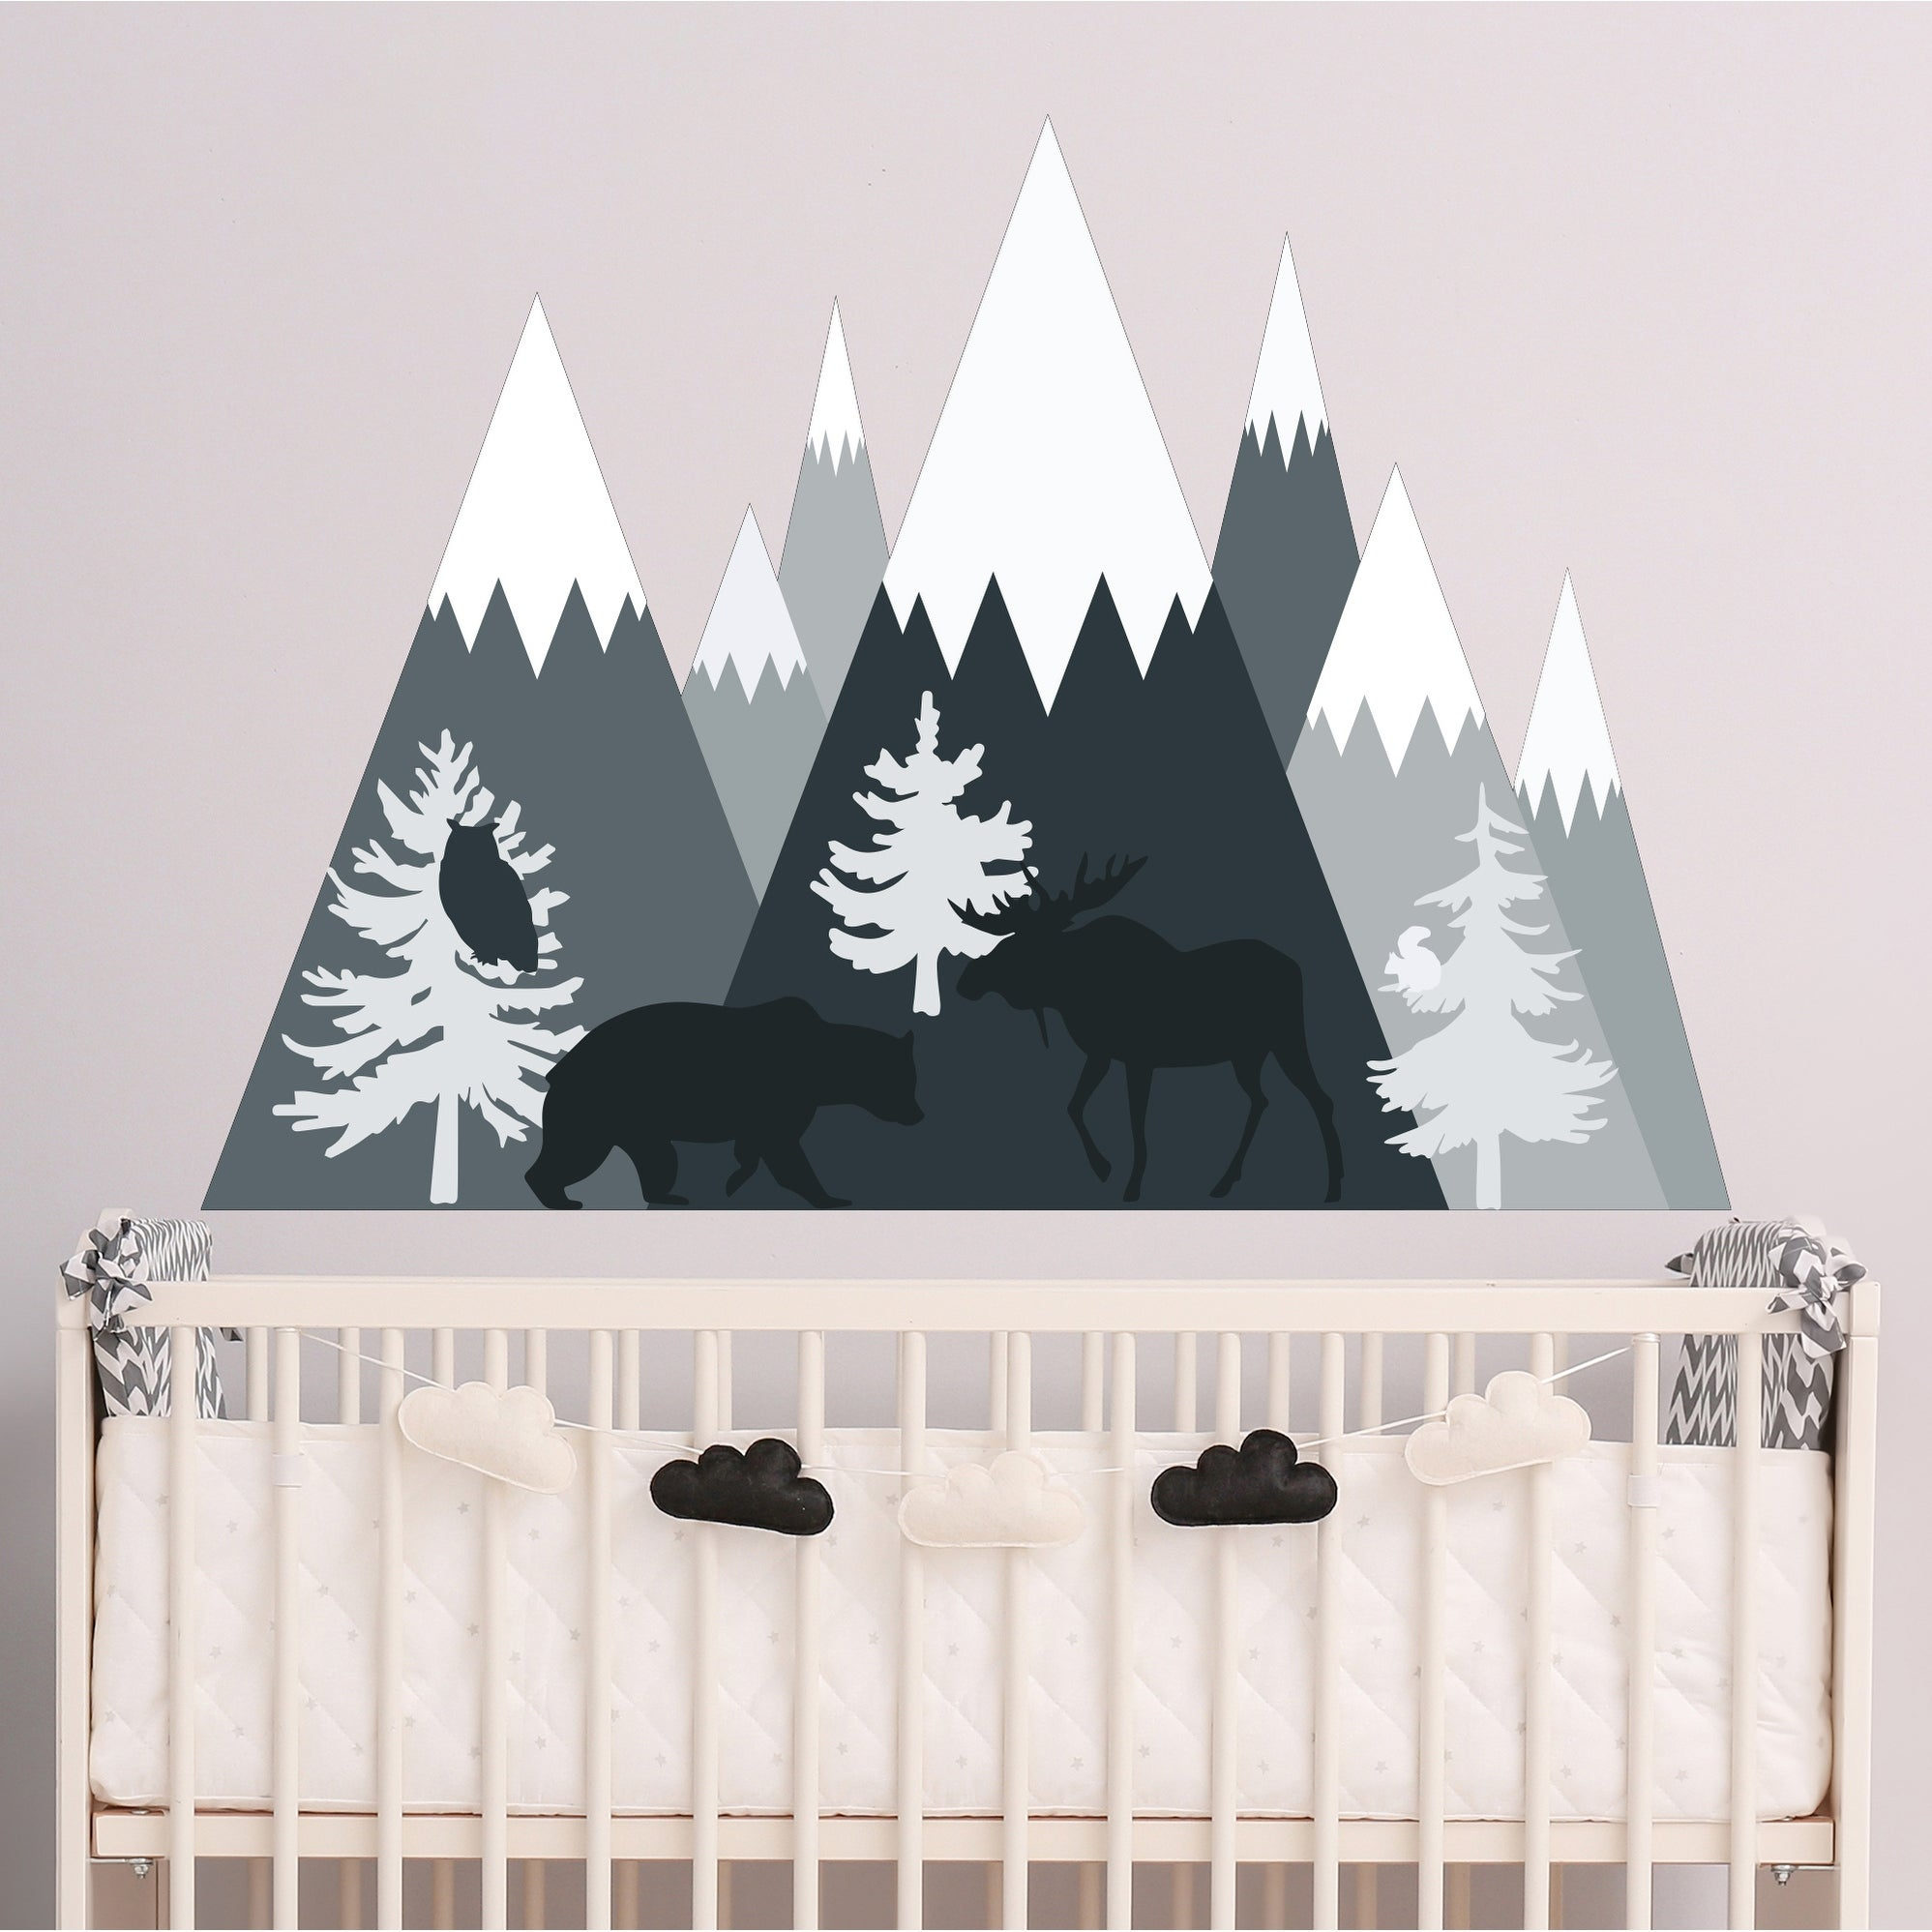 Shop Mountain Wall Decal With Bear Moose On Sale Overstock 21796431